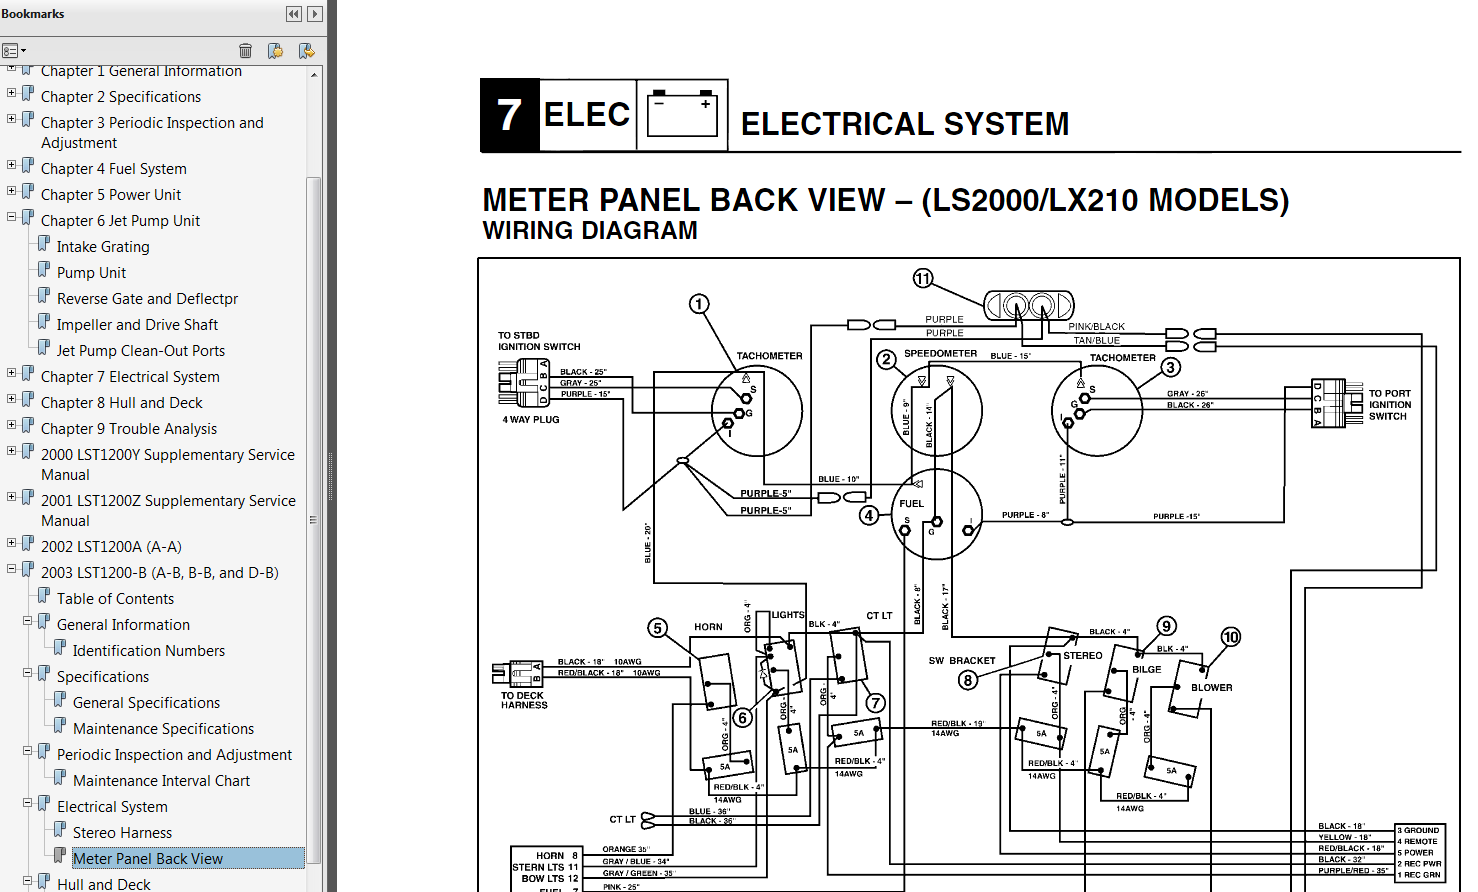 sample2 wiring diagram for 1977 tahiti readingrat net Yamaha Outboard Wiring Diagram at creativeand.co